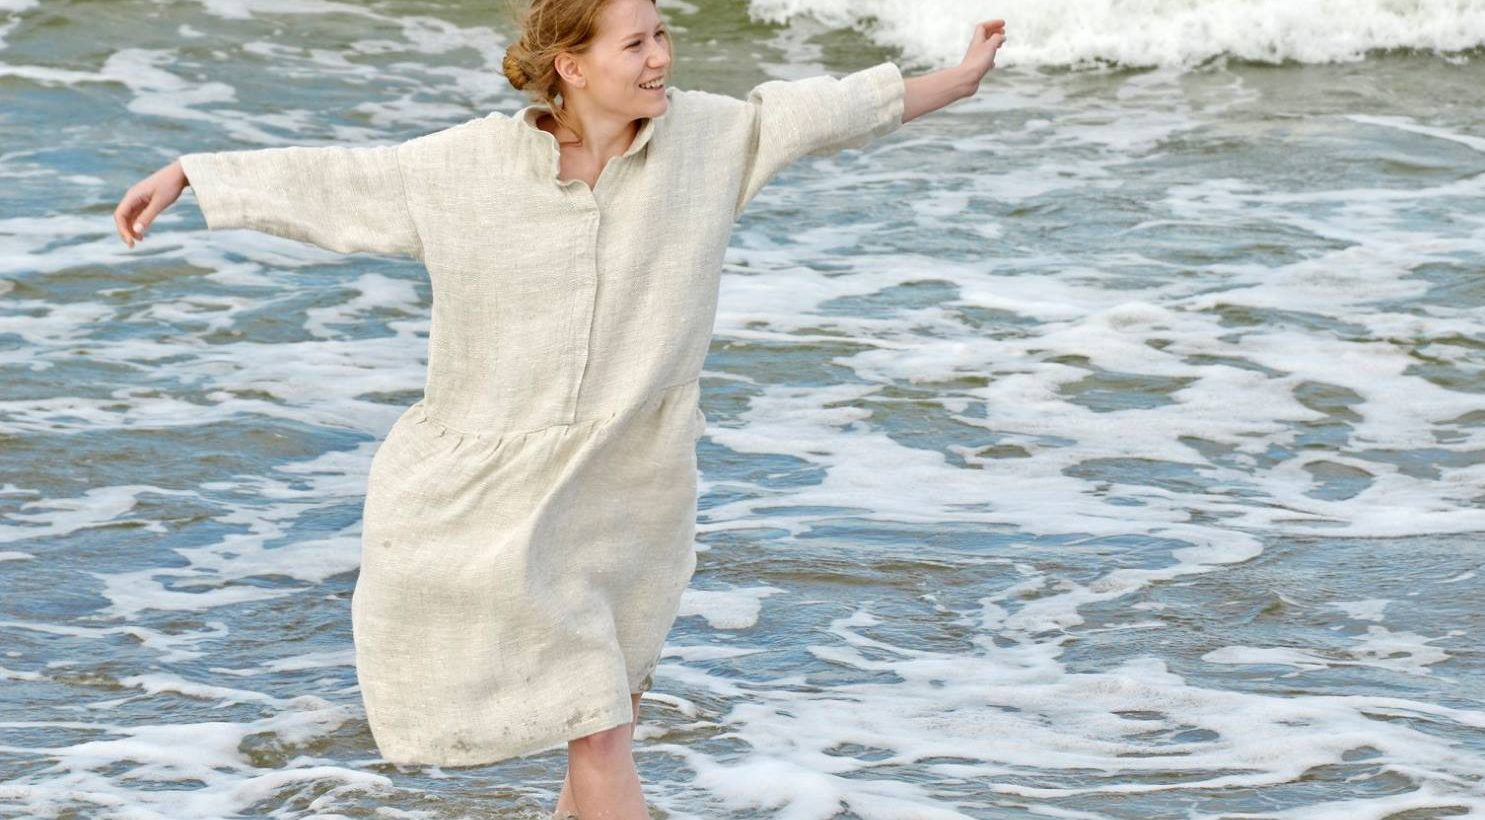 Lithuanian linen found popularity even among selective Japanese